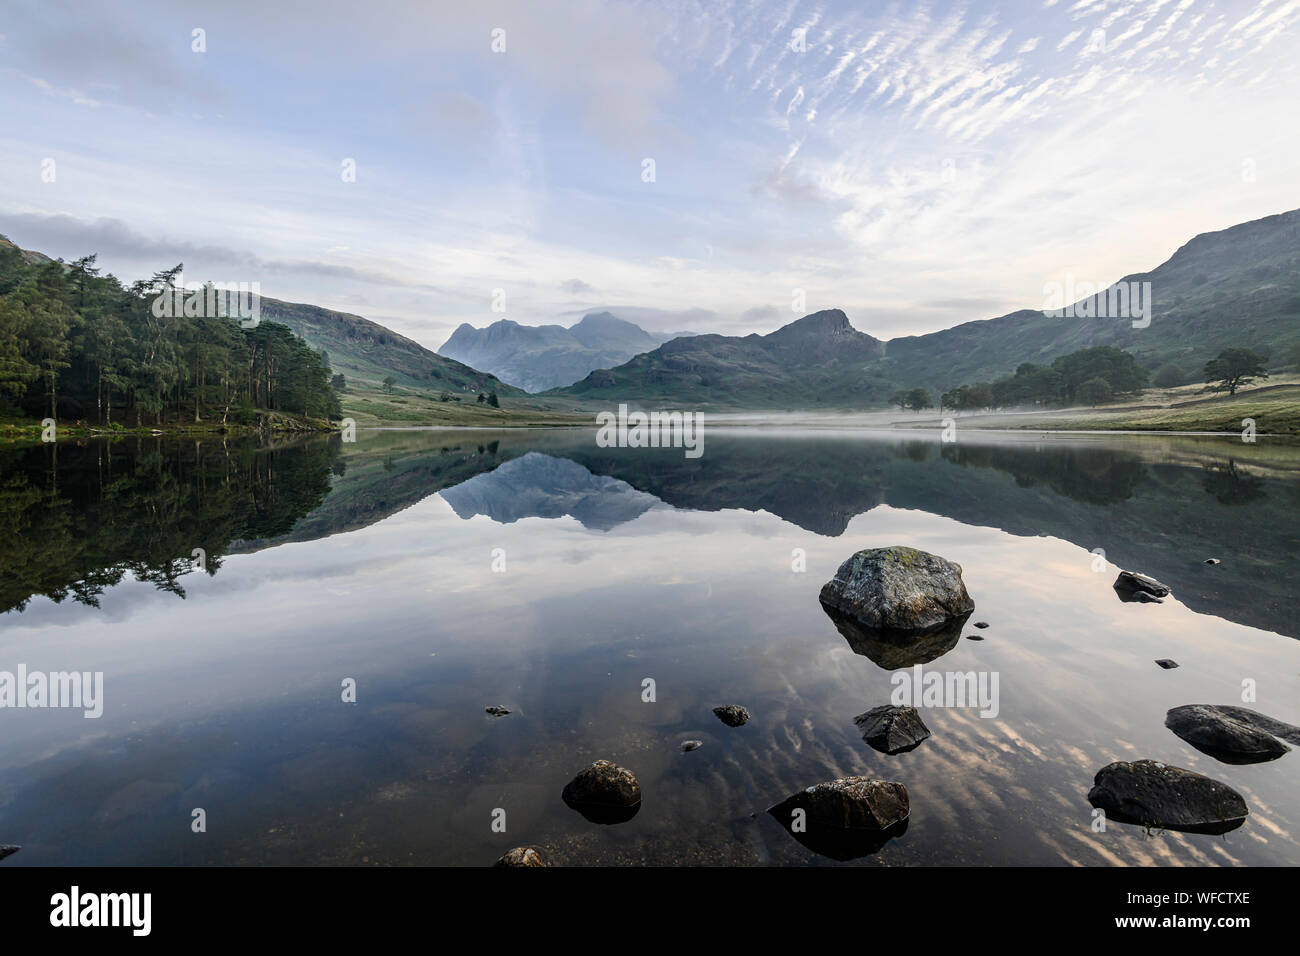 Mirror-like reflections of the Langdale Pikes in Blea Tarn early morning in late summer Stock Photo